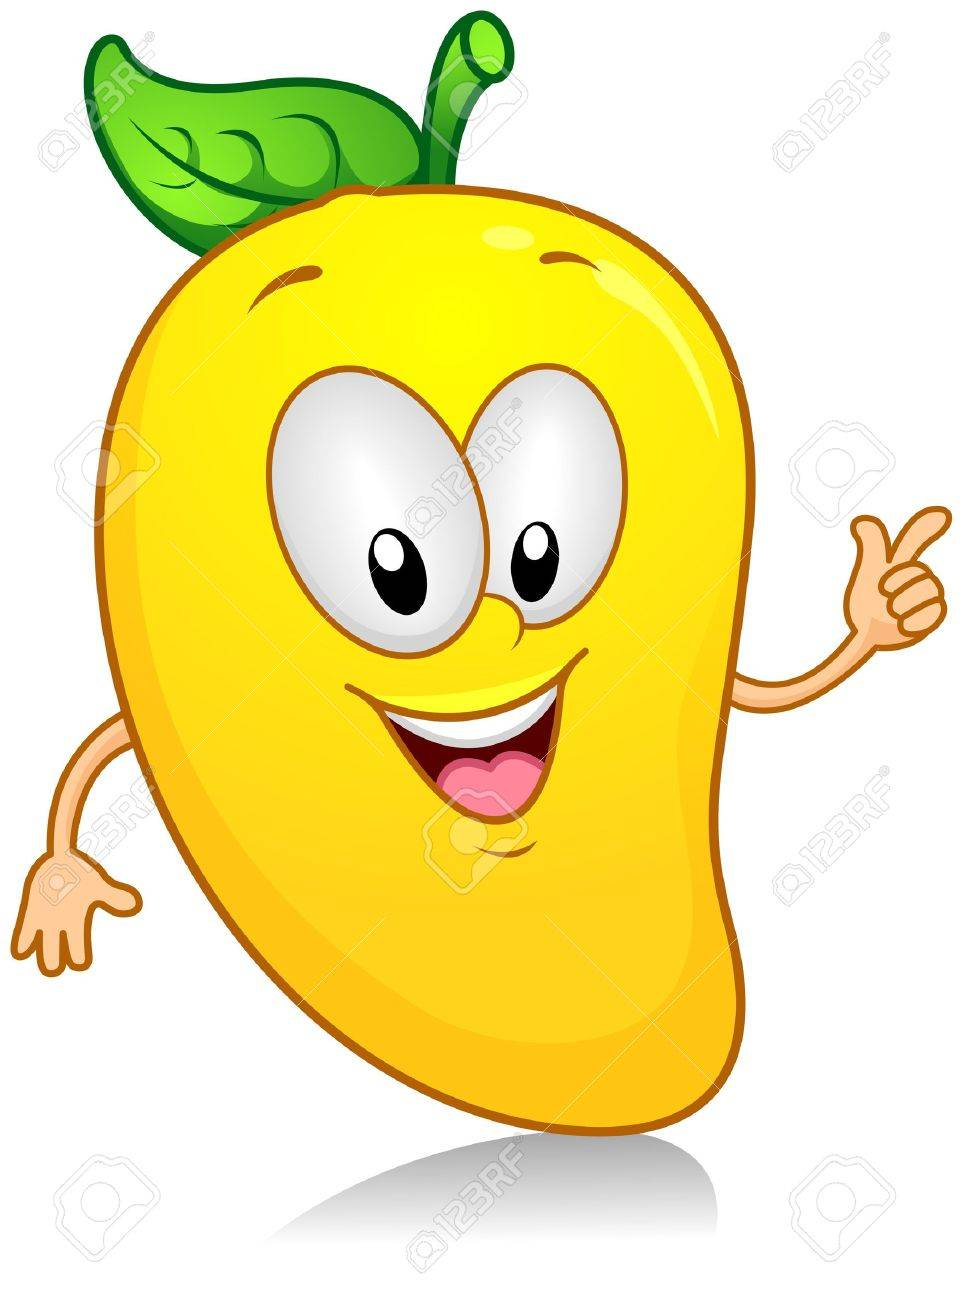 Illustration of a Mango Character Gesturing Something with its Arm Stock Illustration - 8268574